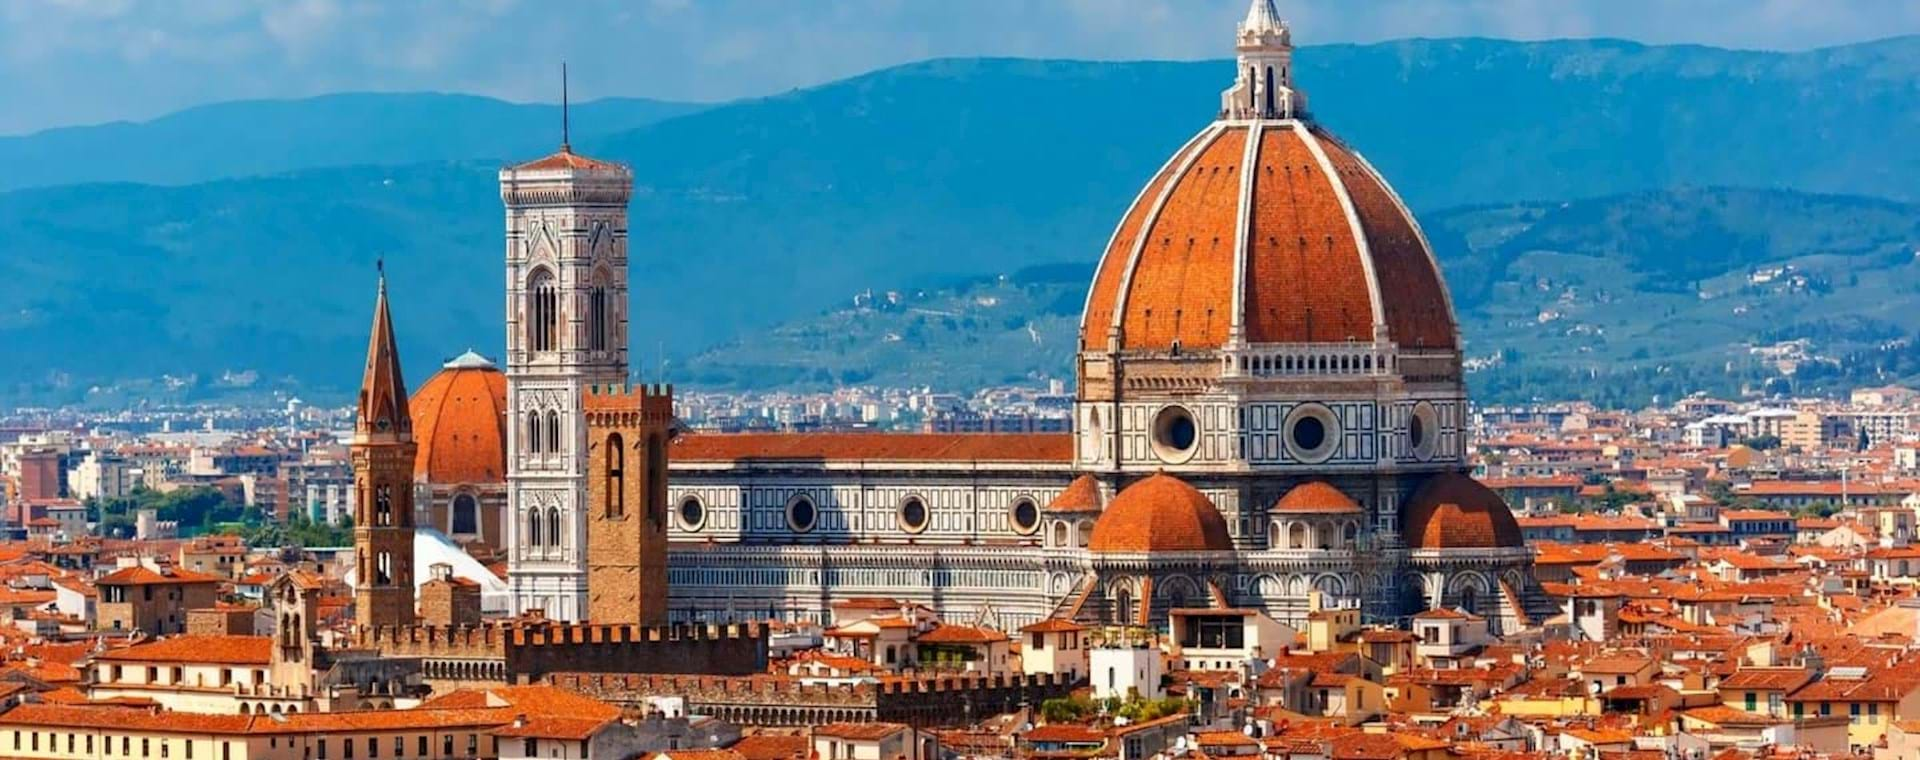 Half Day Best of Florence Tour with Statue of David and Florence Cathedral